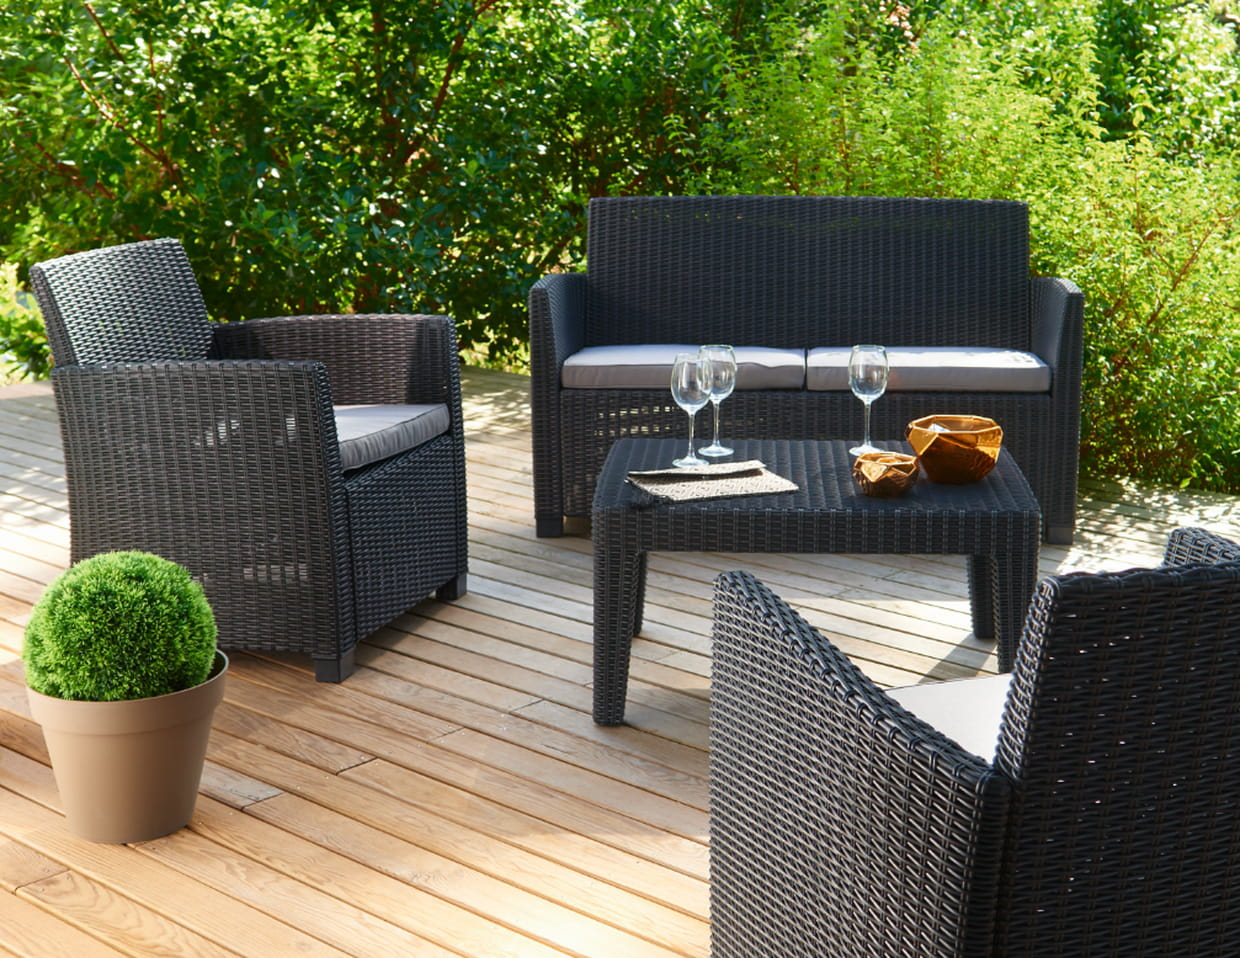 salon de jardin 4 personnes de gifi. Black Bedroom Furniture Sets. Home Design Ideas